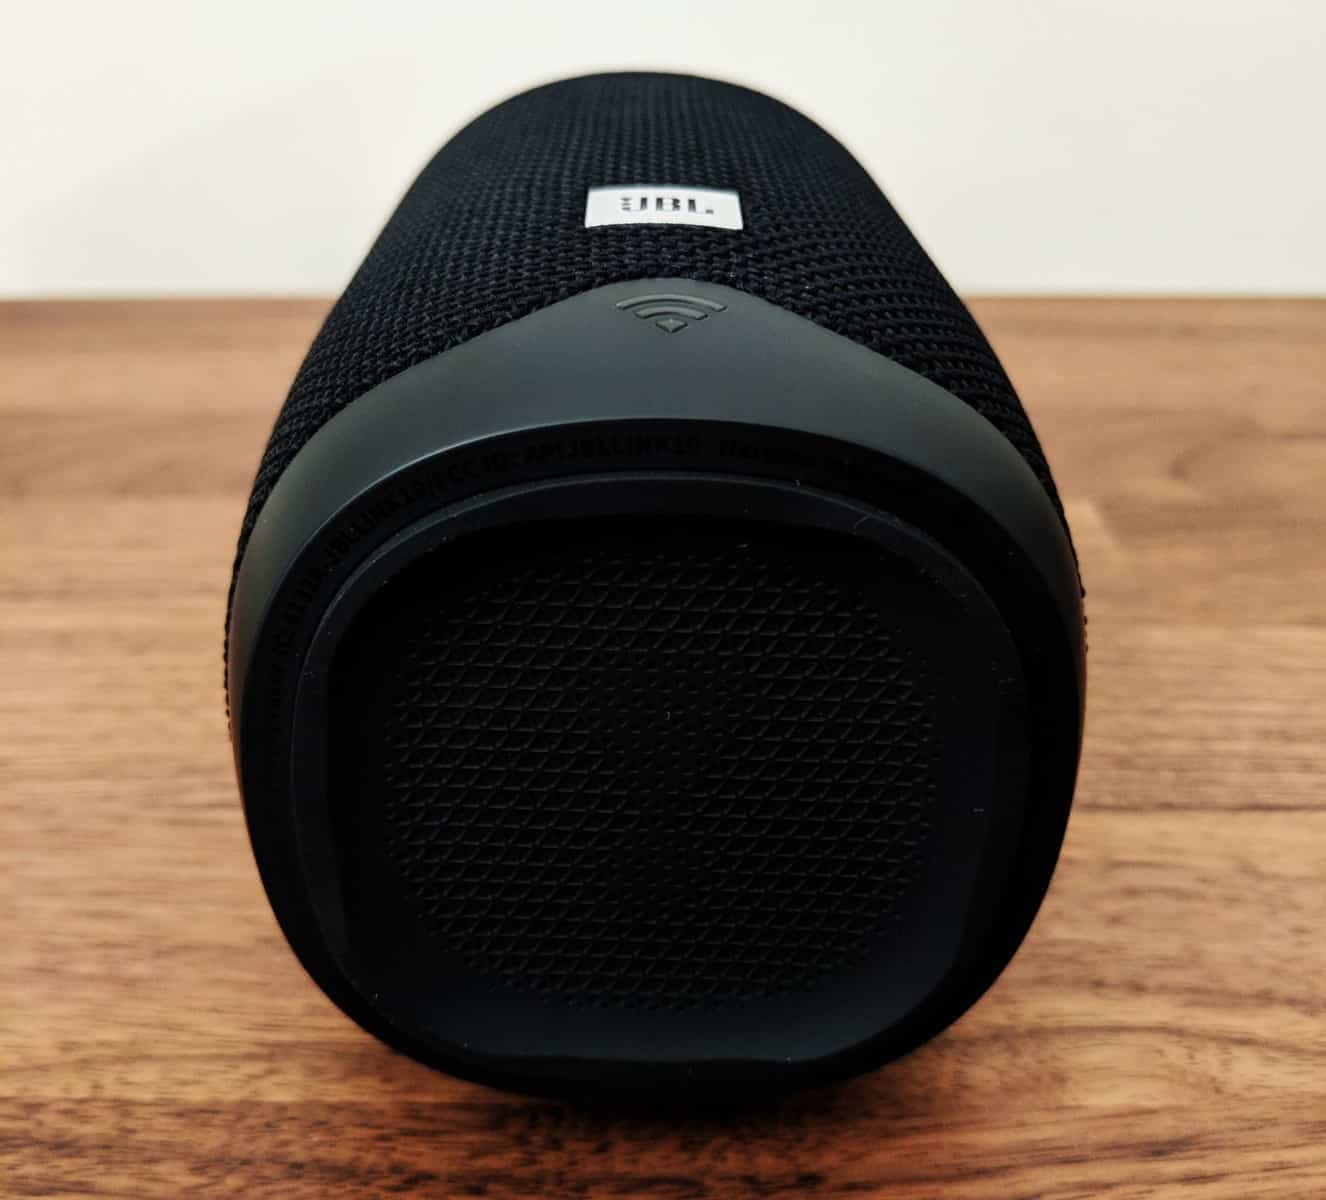 JBL-Link10-Photos02 JBL Link 10 Voice-Activated Bluetooth Speaker Review